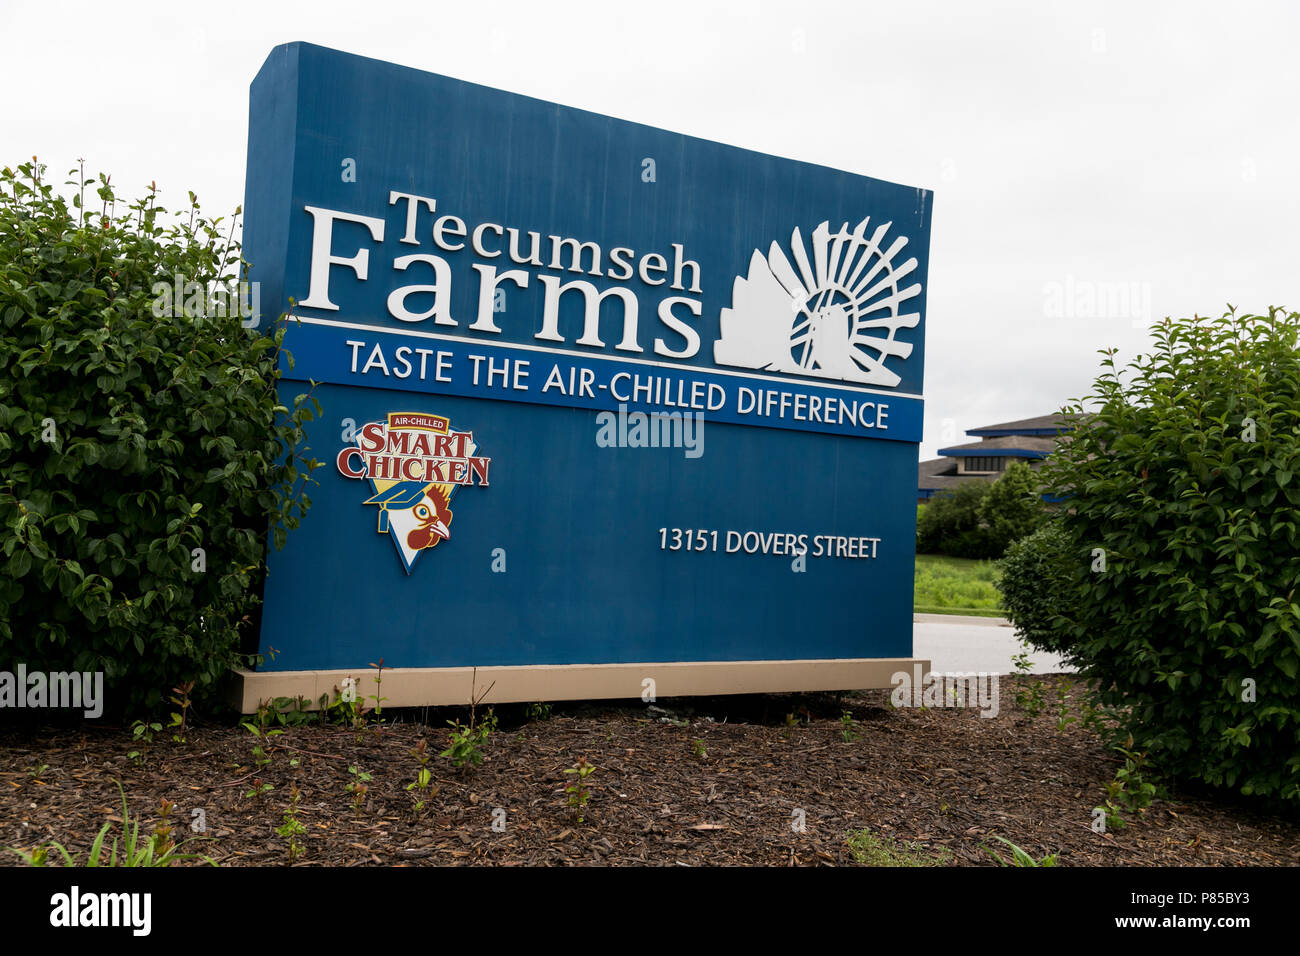 A logo sign outside of the headquarters of Tecumseh Poultry in Waverly, Nebraska on July 1, 2018. - Stock Image